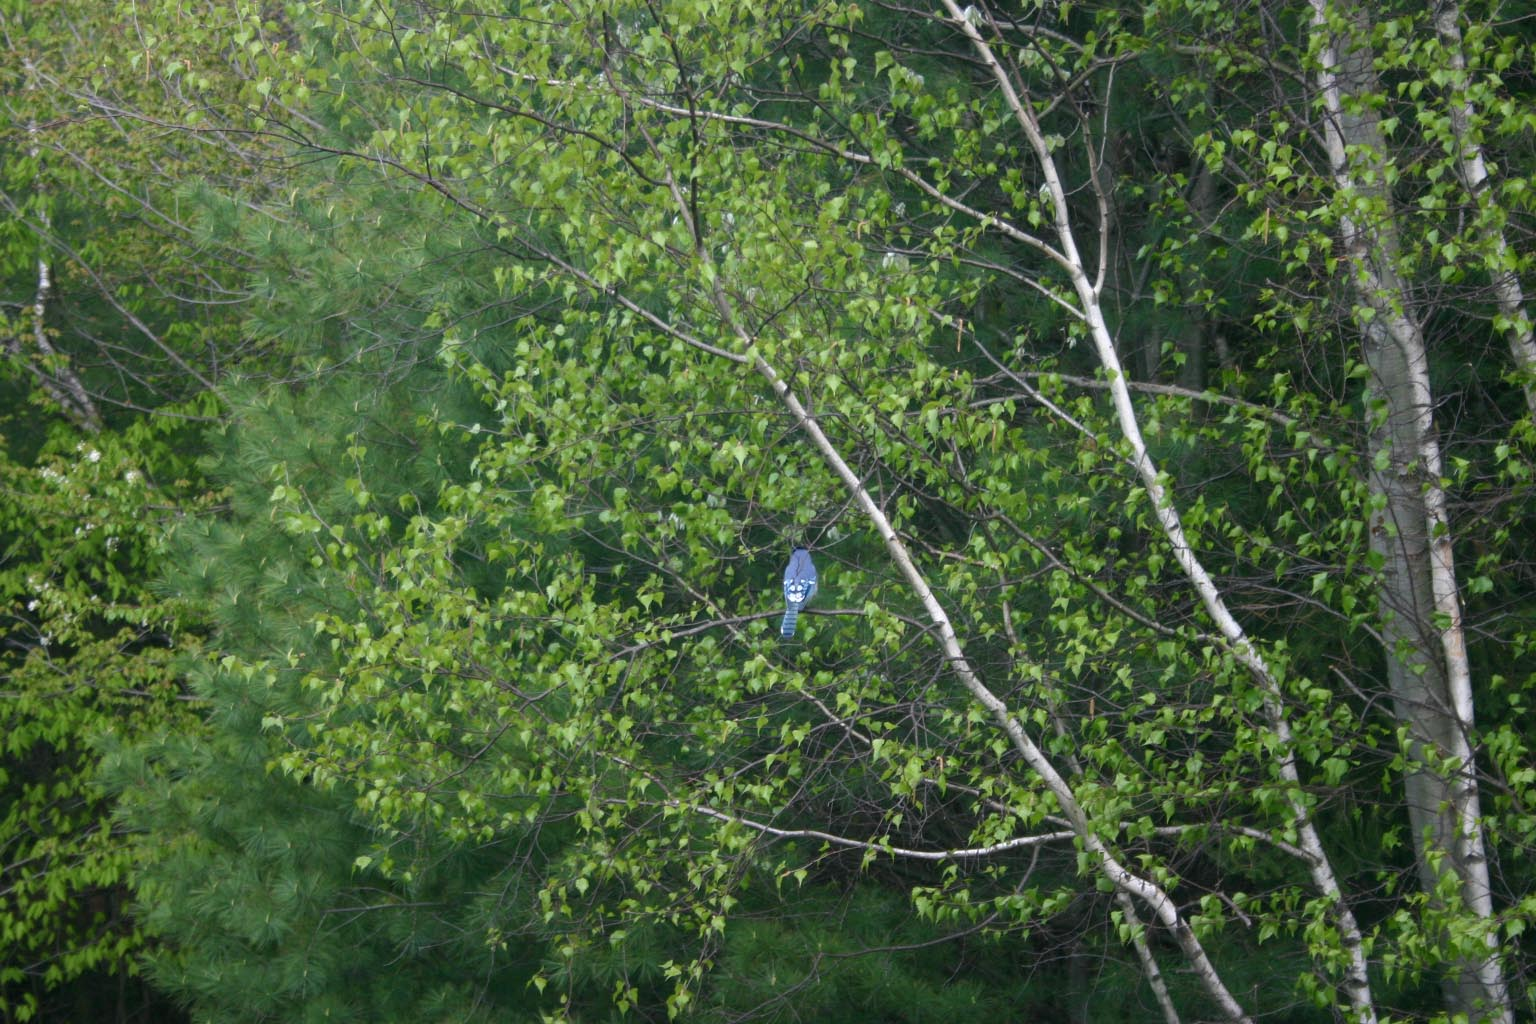 A Blue Jay in the green thickness